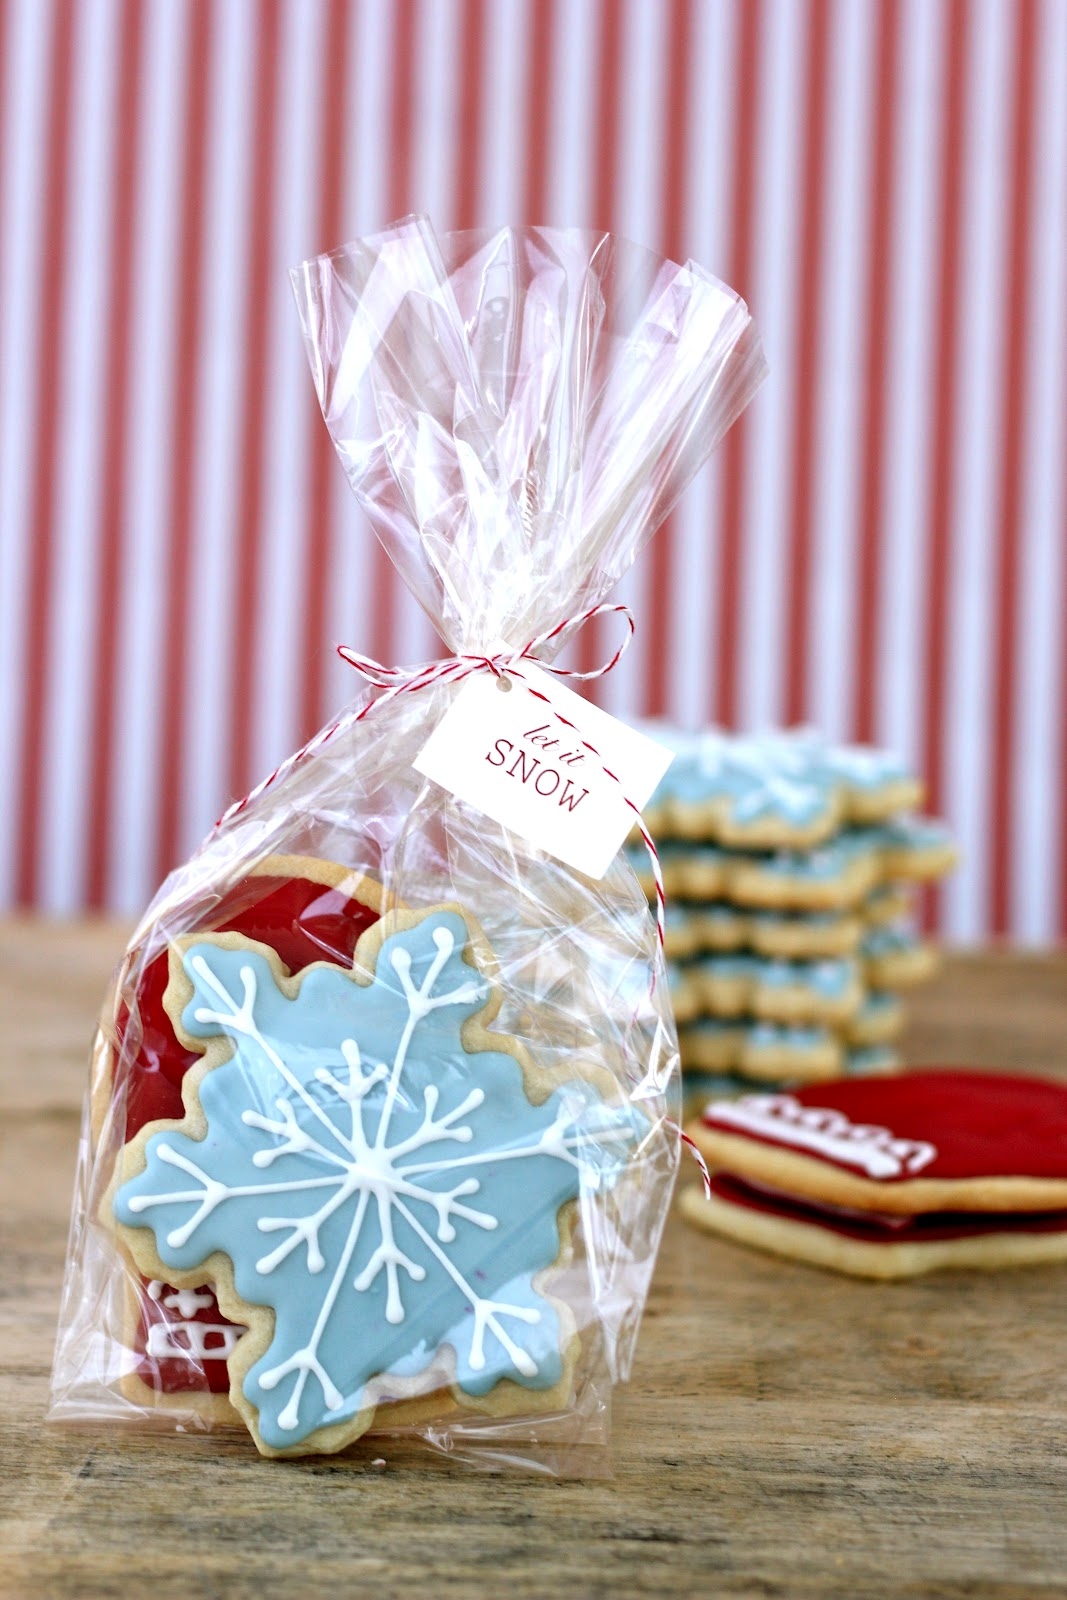 Jenny steffens hobick packaging baked goods in your